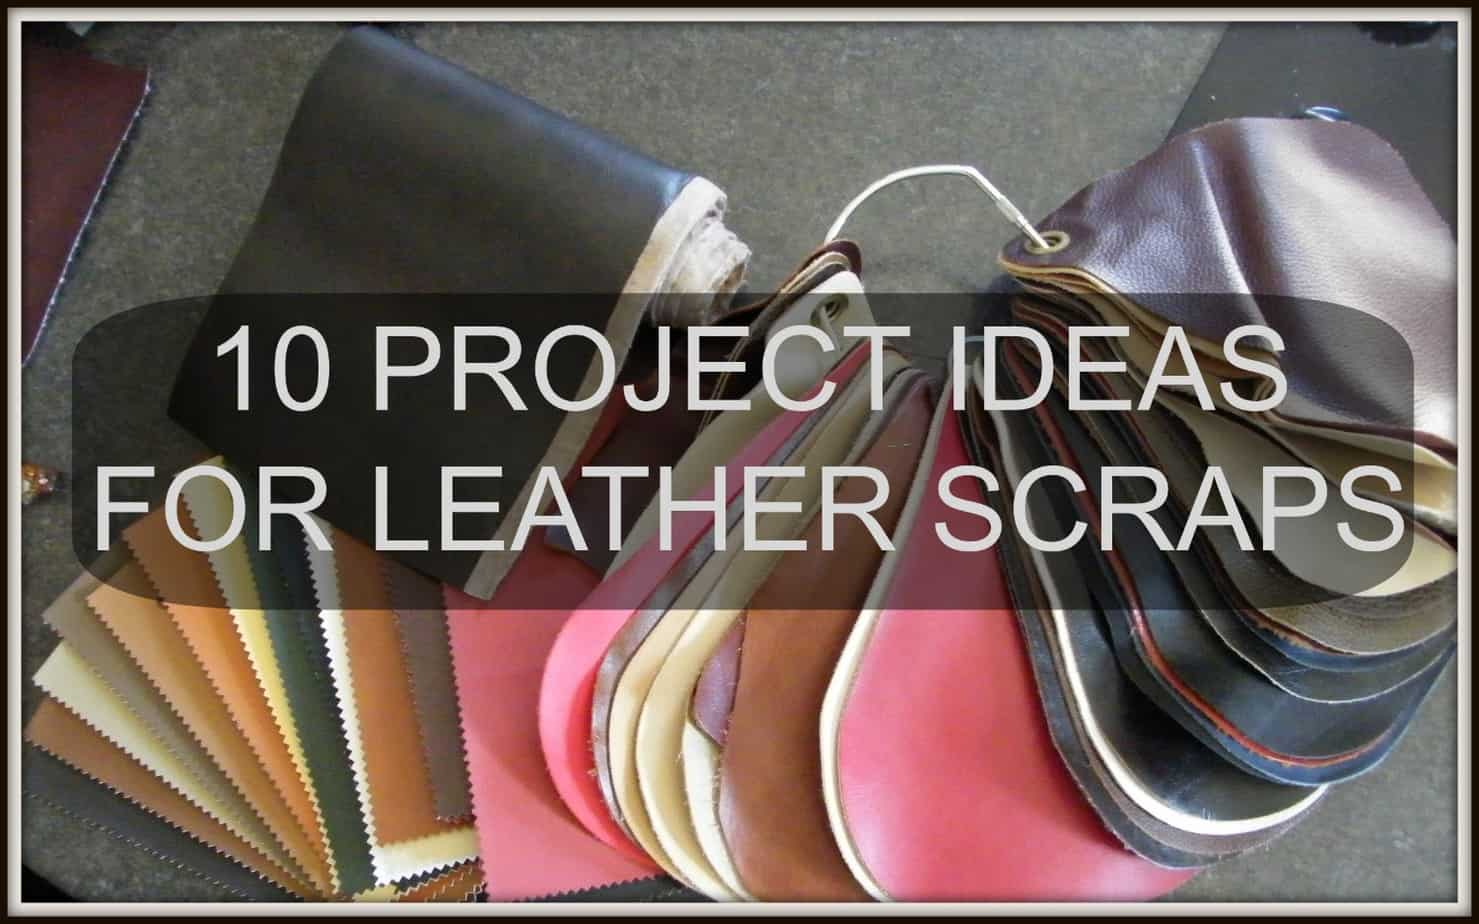 Leather scraps for crafts - 10 Project Ideas For Leather Scraps